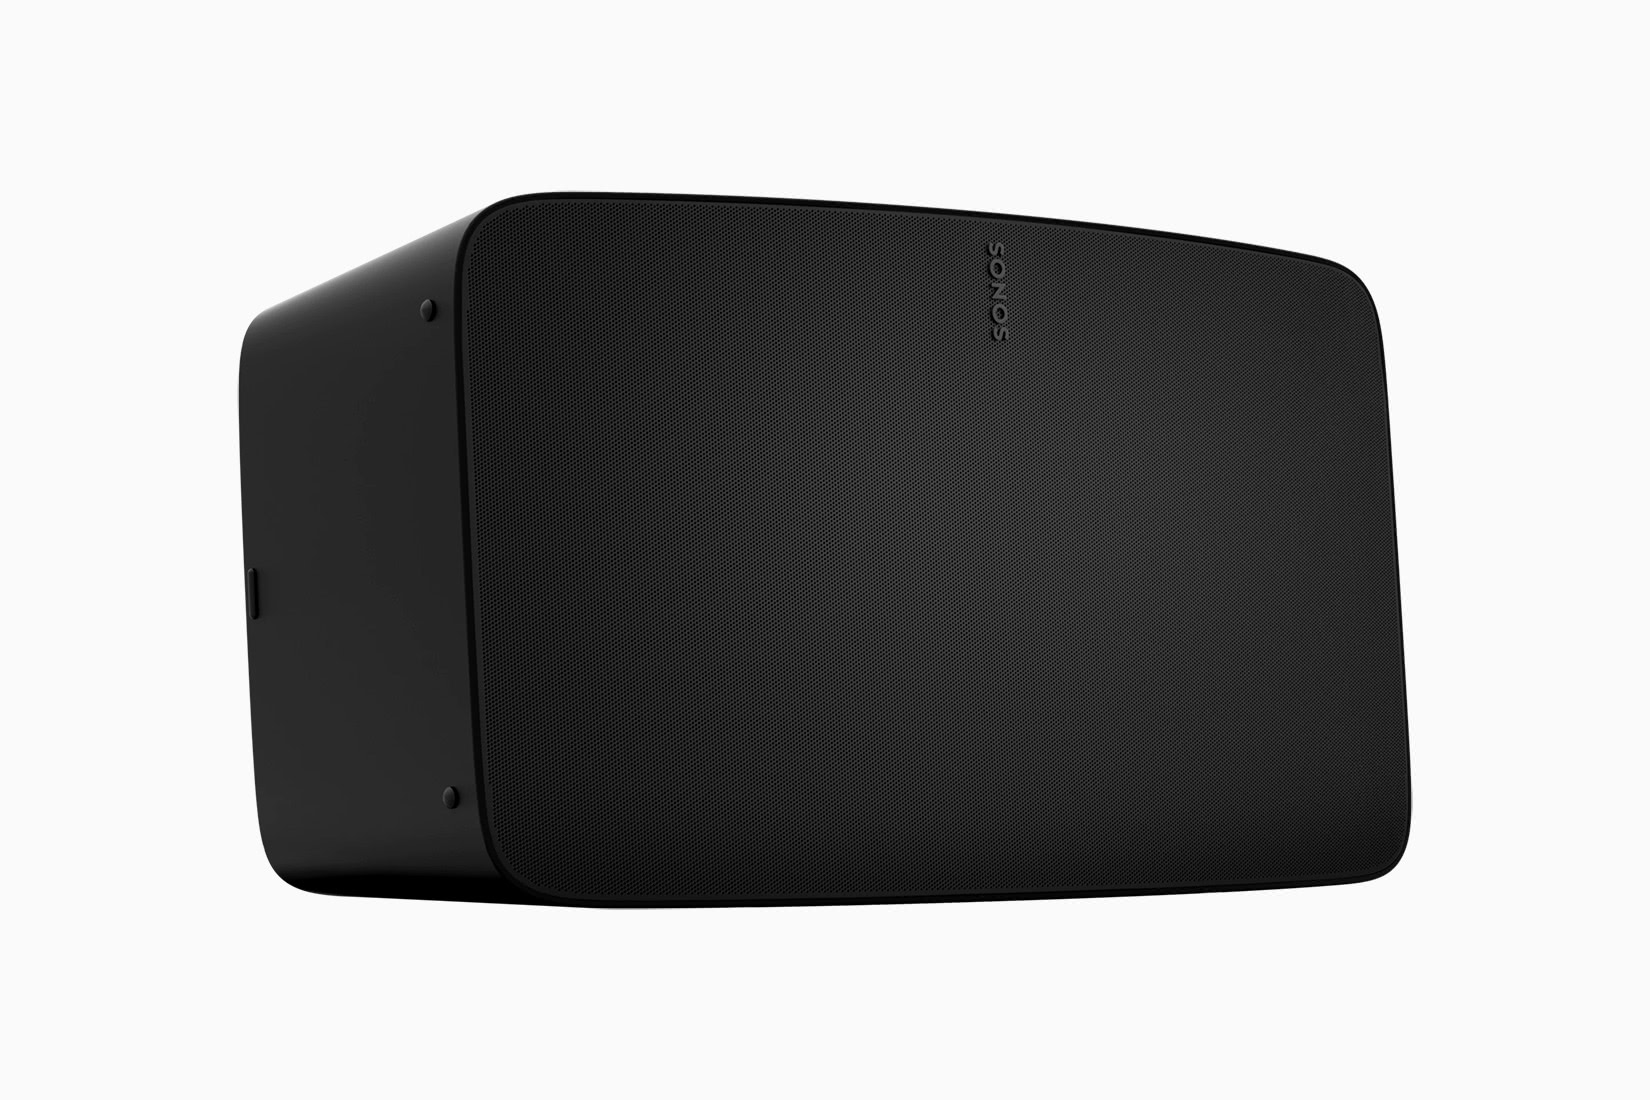 best wireless speakers sonos five - Luxe Digital